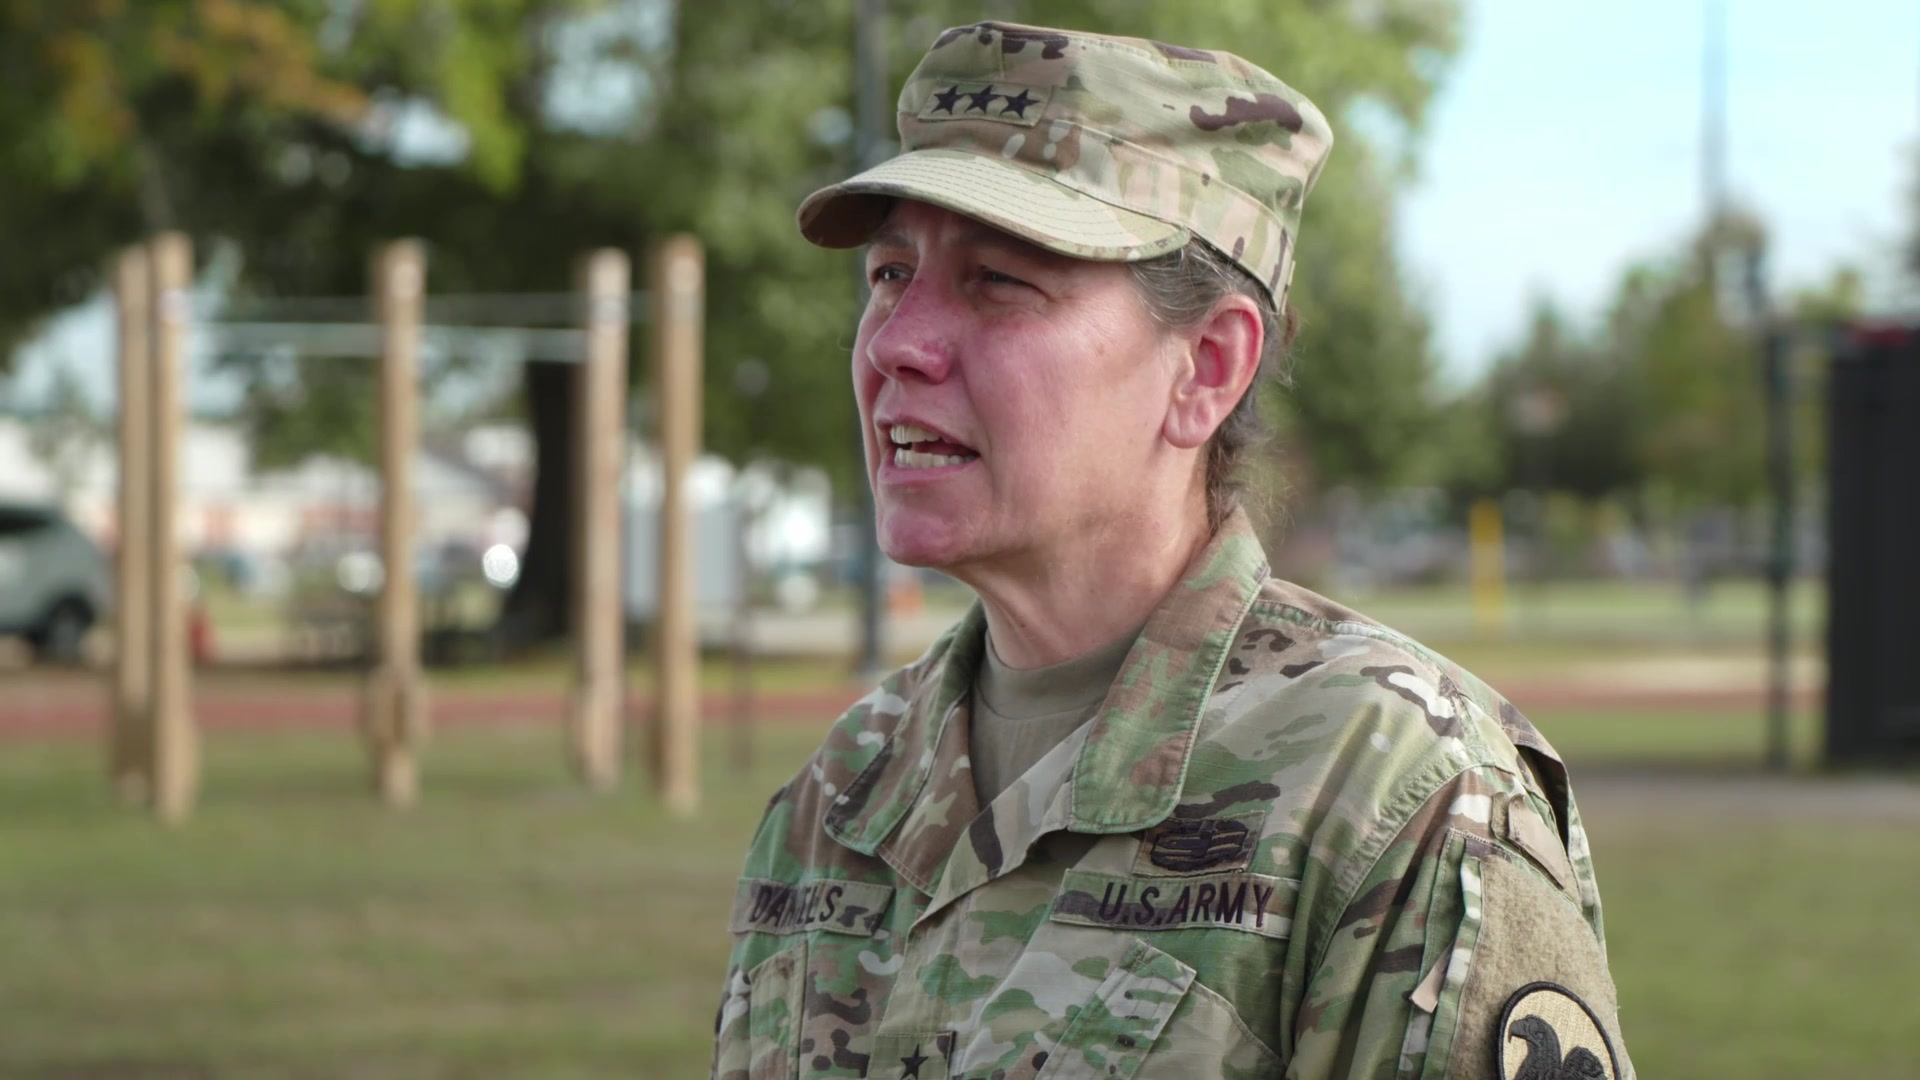 Lt. Gen. Jody Daniels, Chief of Army Reserve and Commanding General U.S. Army Reserve Command, gives a message about not letting our guards down as we approach the holiday season. COVID is still a threat and Soldiers and civilians should should continue to take appropriate steps to keep others and themselves safe.